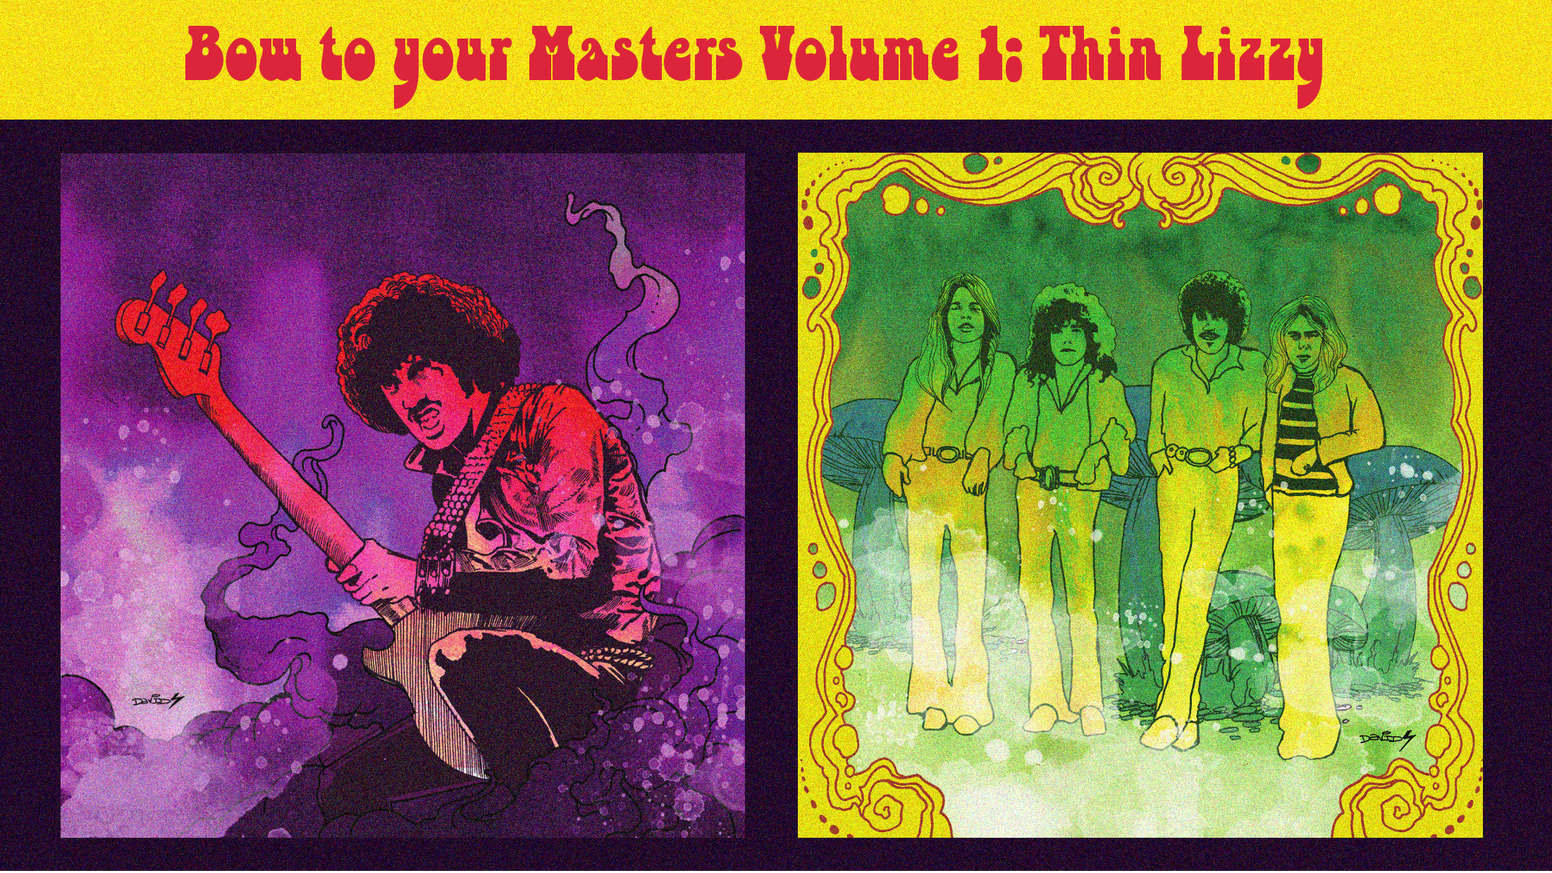 Bow to Your Masters Volume 1: Thin Lizzy by Glory or Death